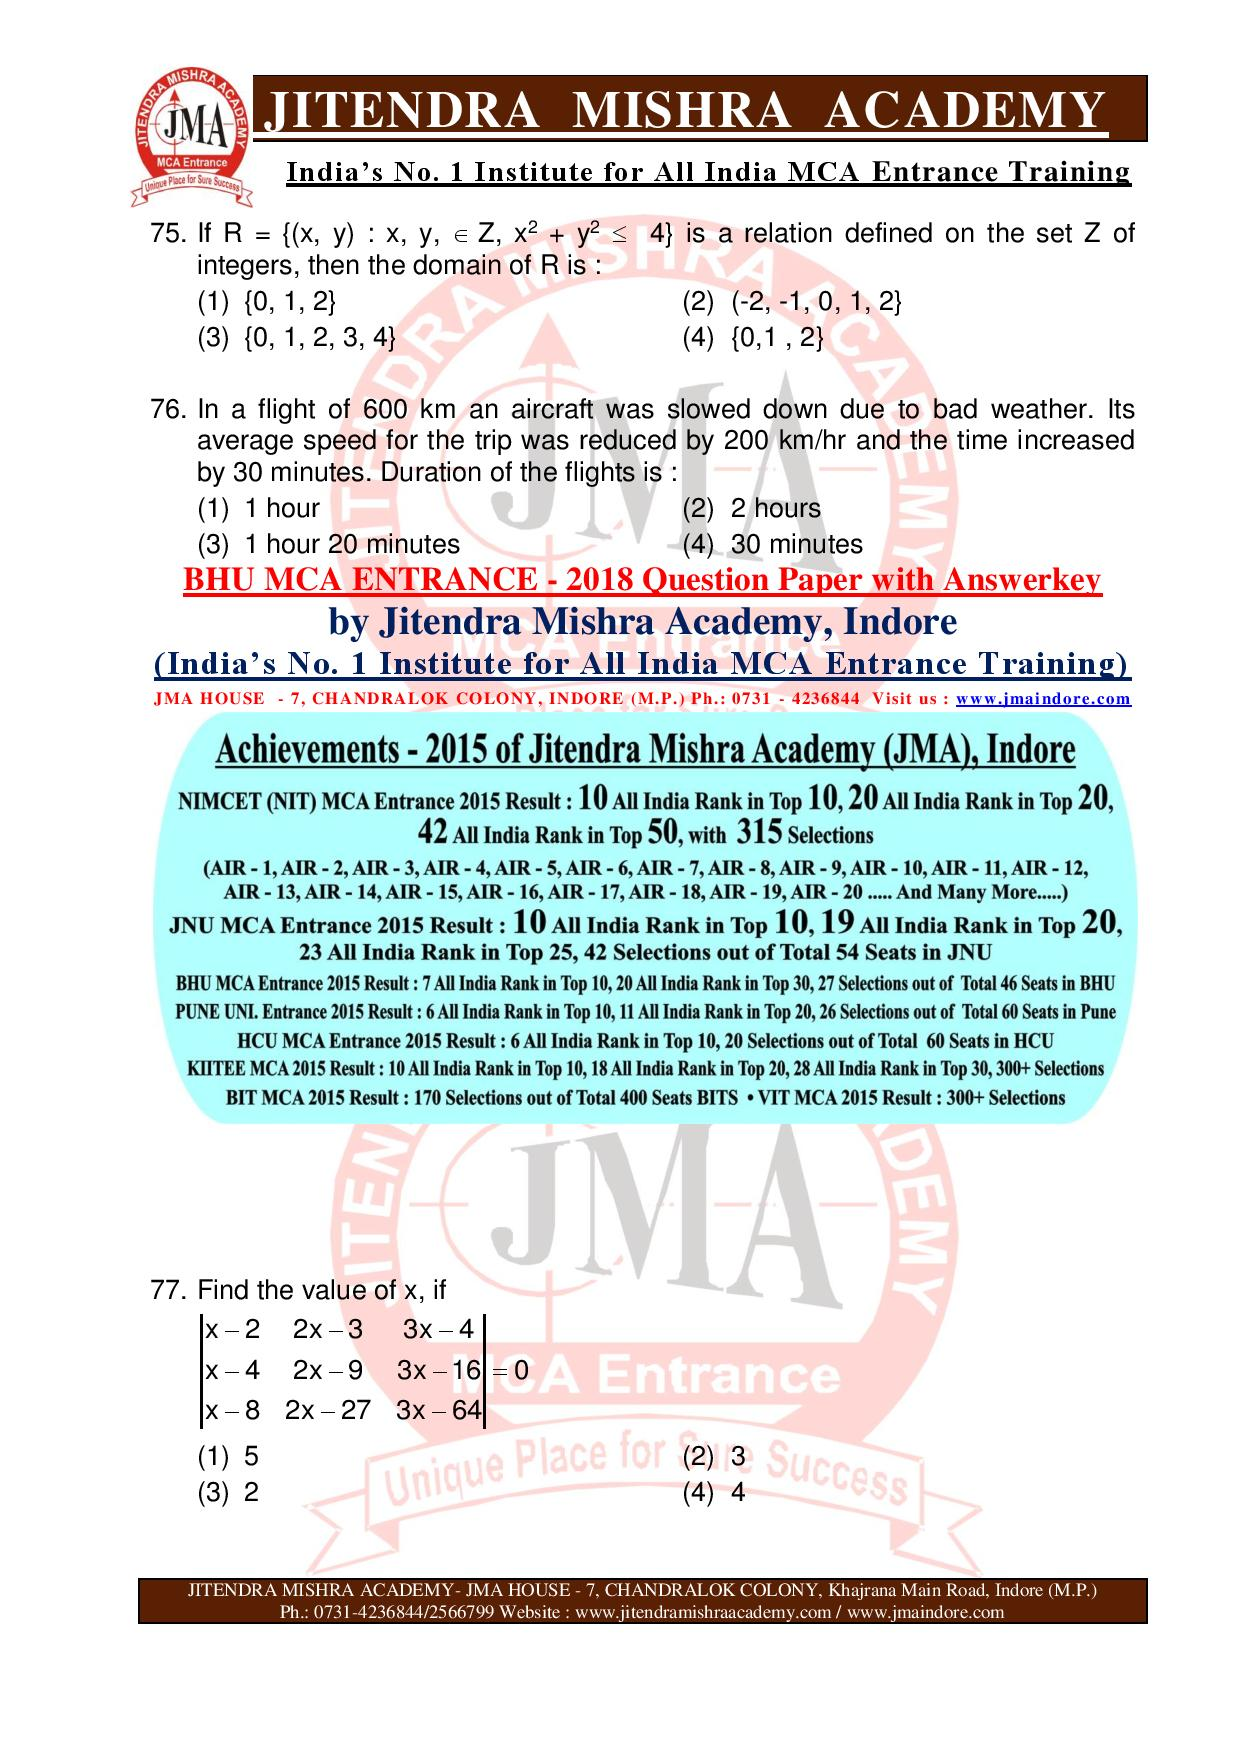 BHU MCA 2018 QUESTION PAPER12-page-023